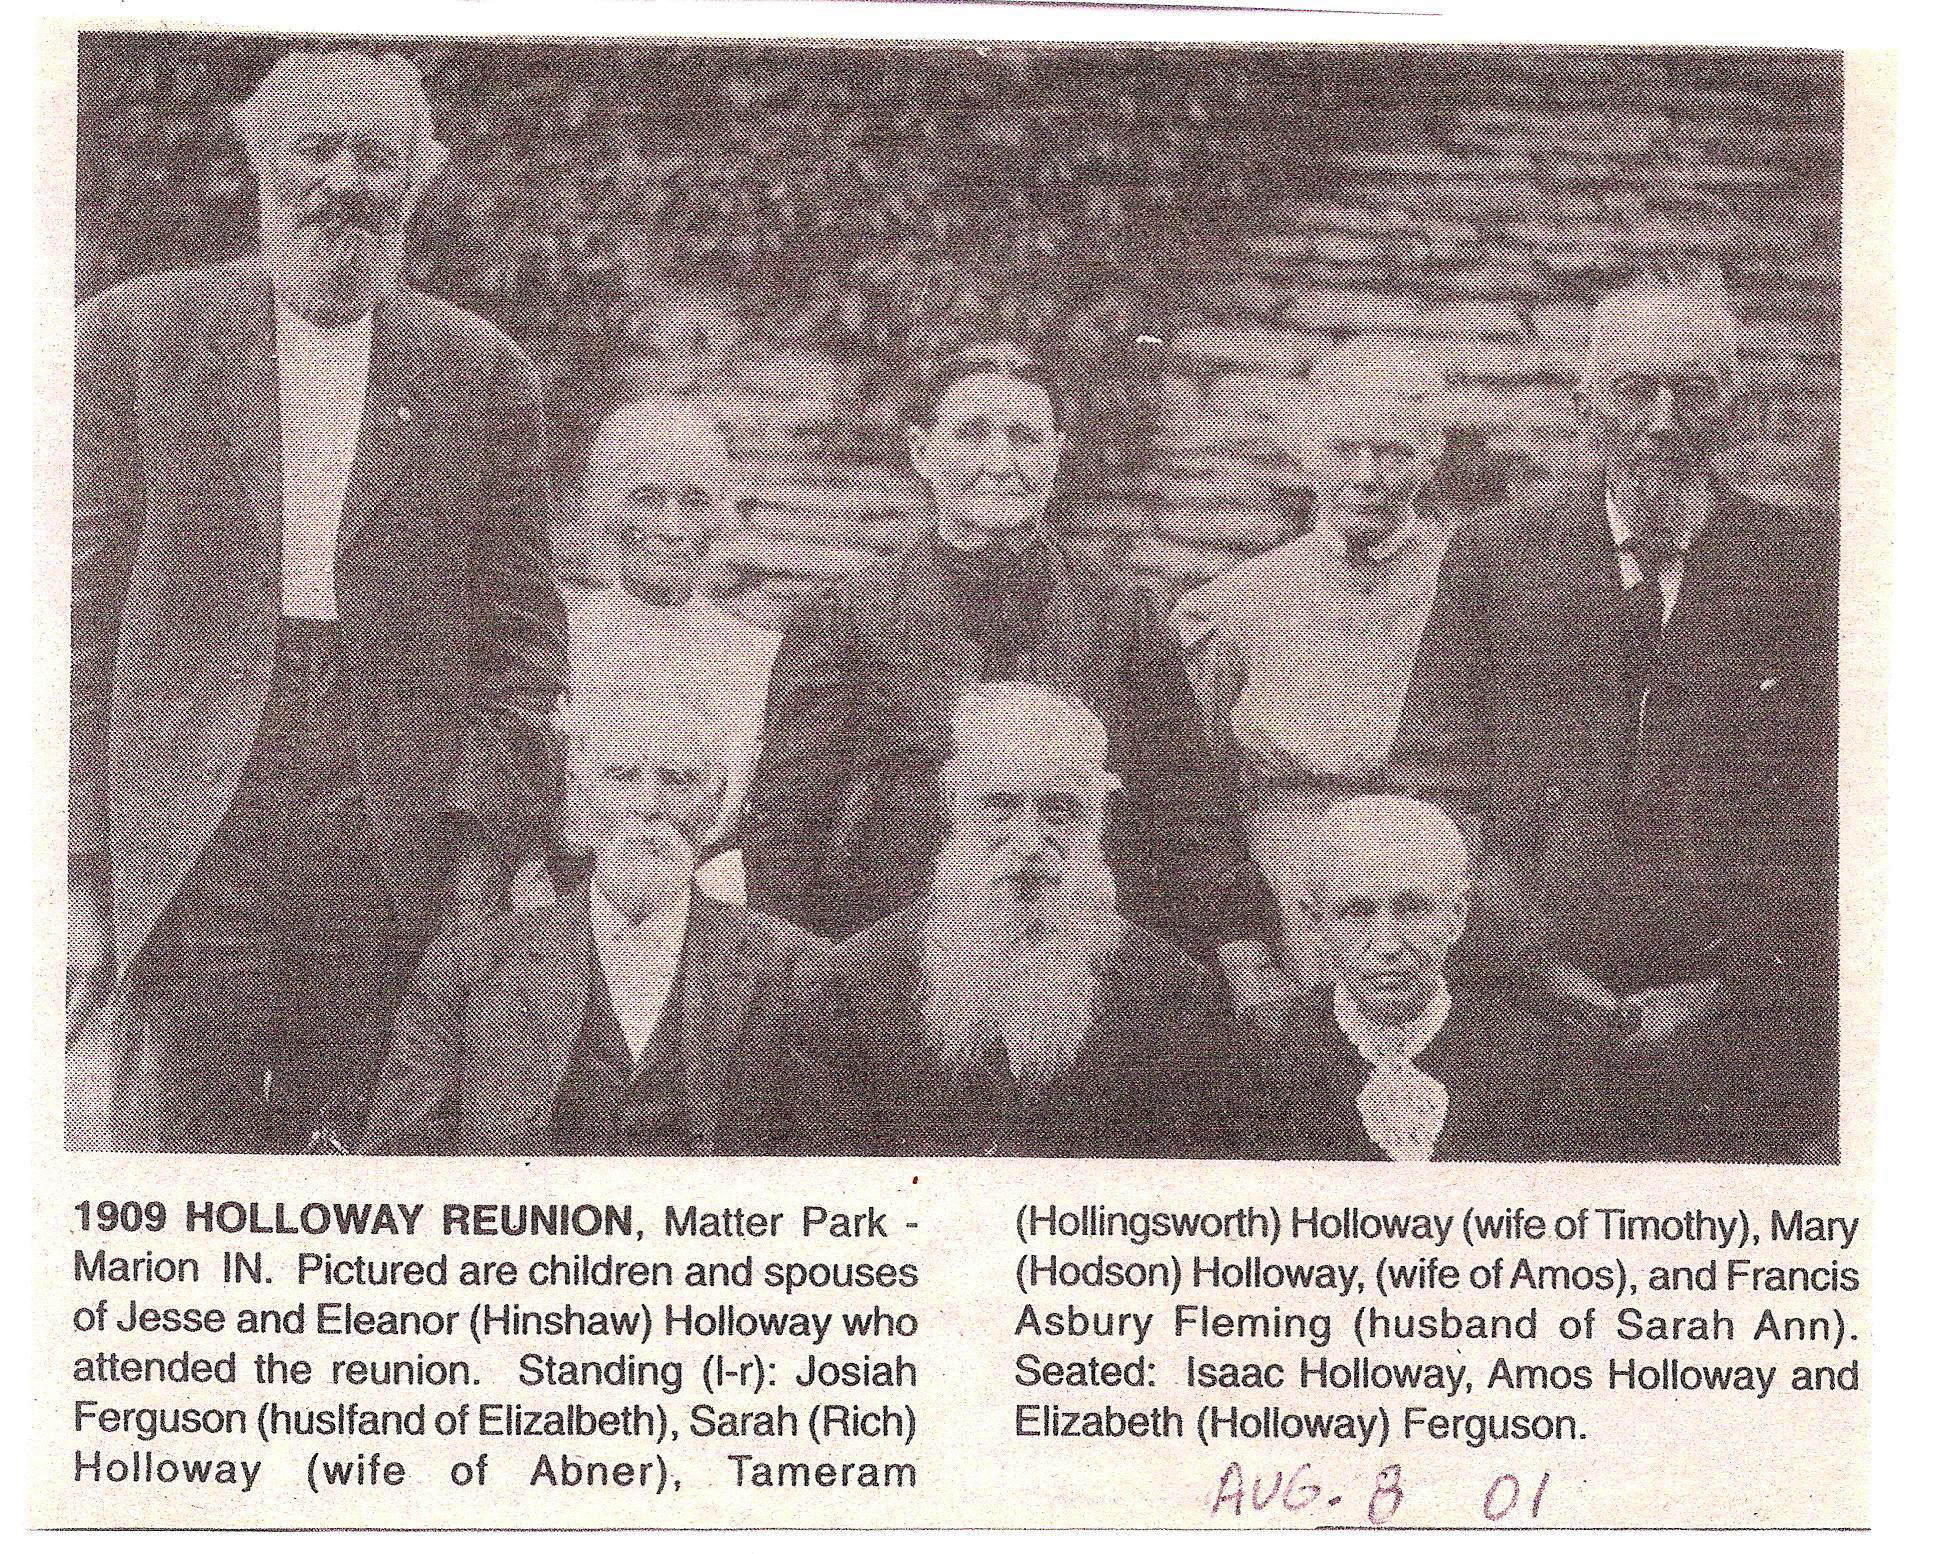 1909 Holloway Reunion